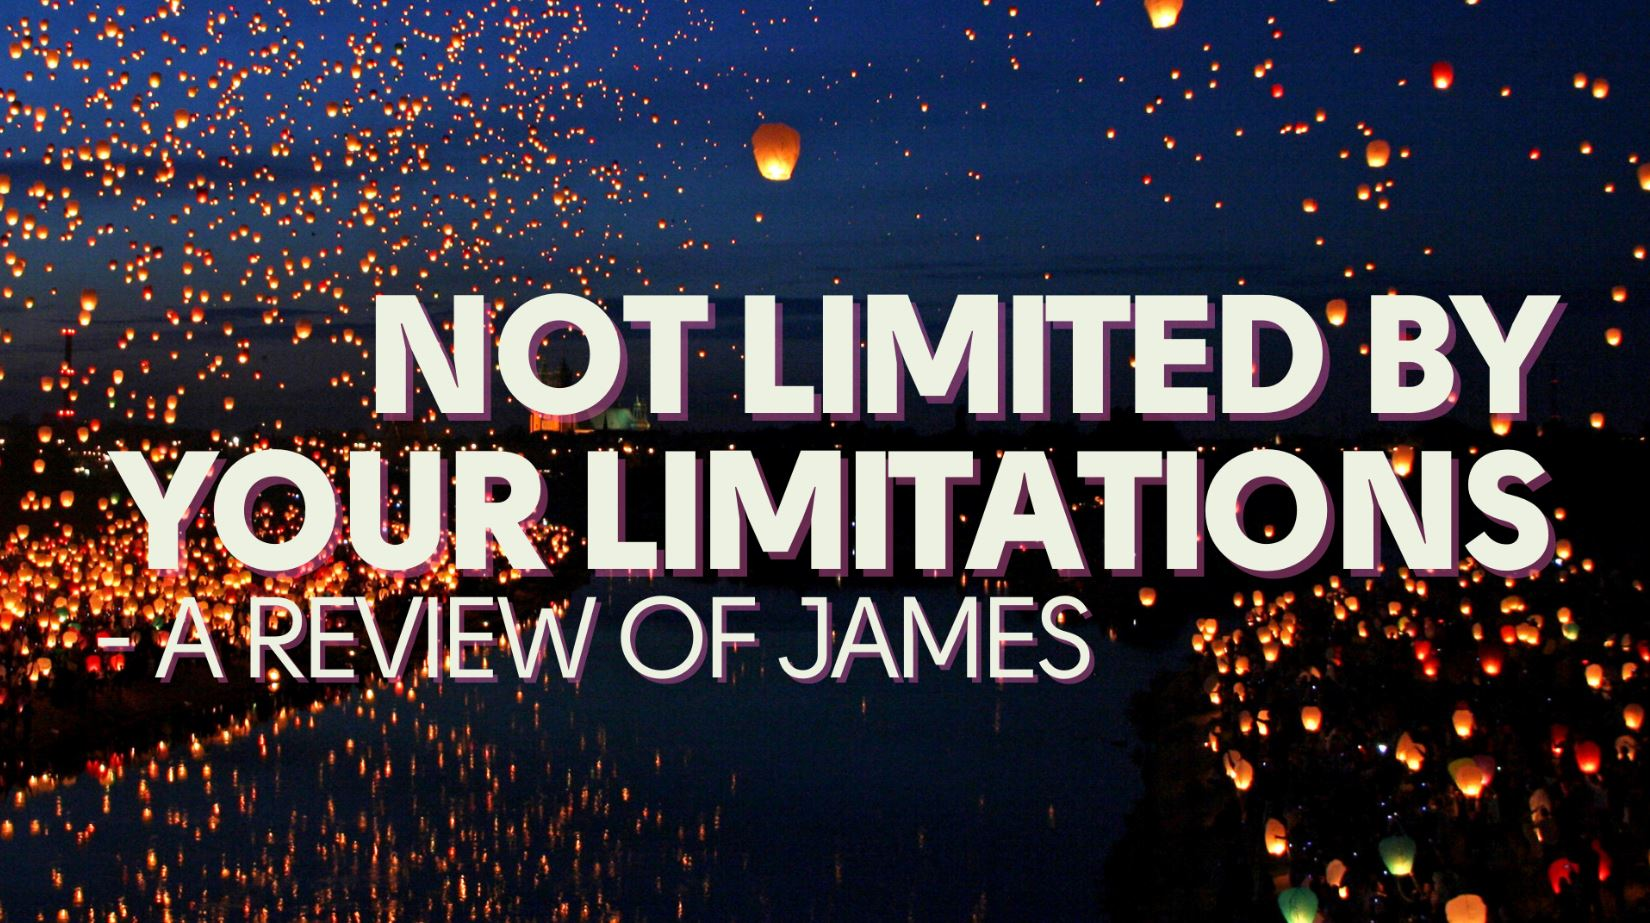 Not limited by your limitations - a review of James